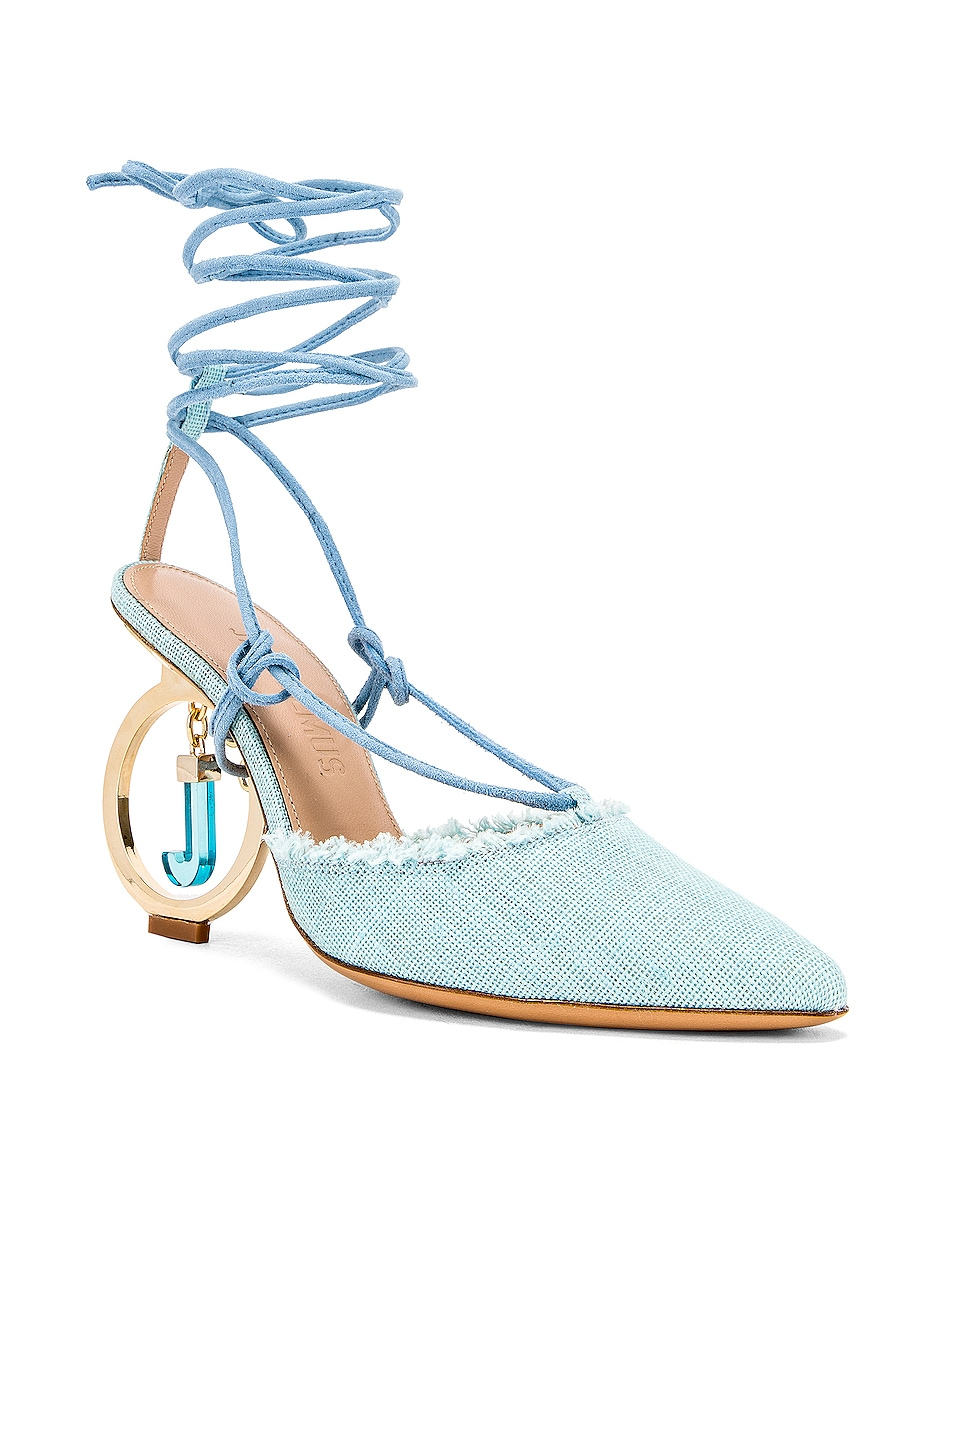 Image 2 of JACQUEMUS Chaussures Riviera Sandal in Light Blue